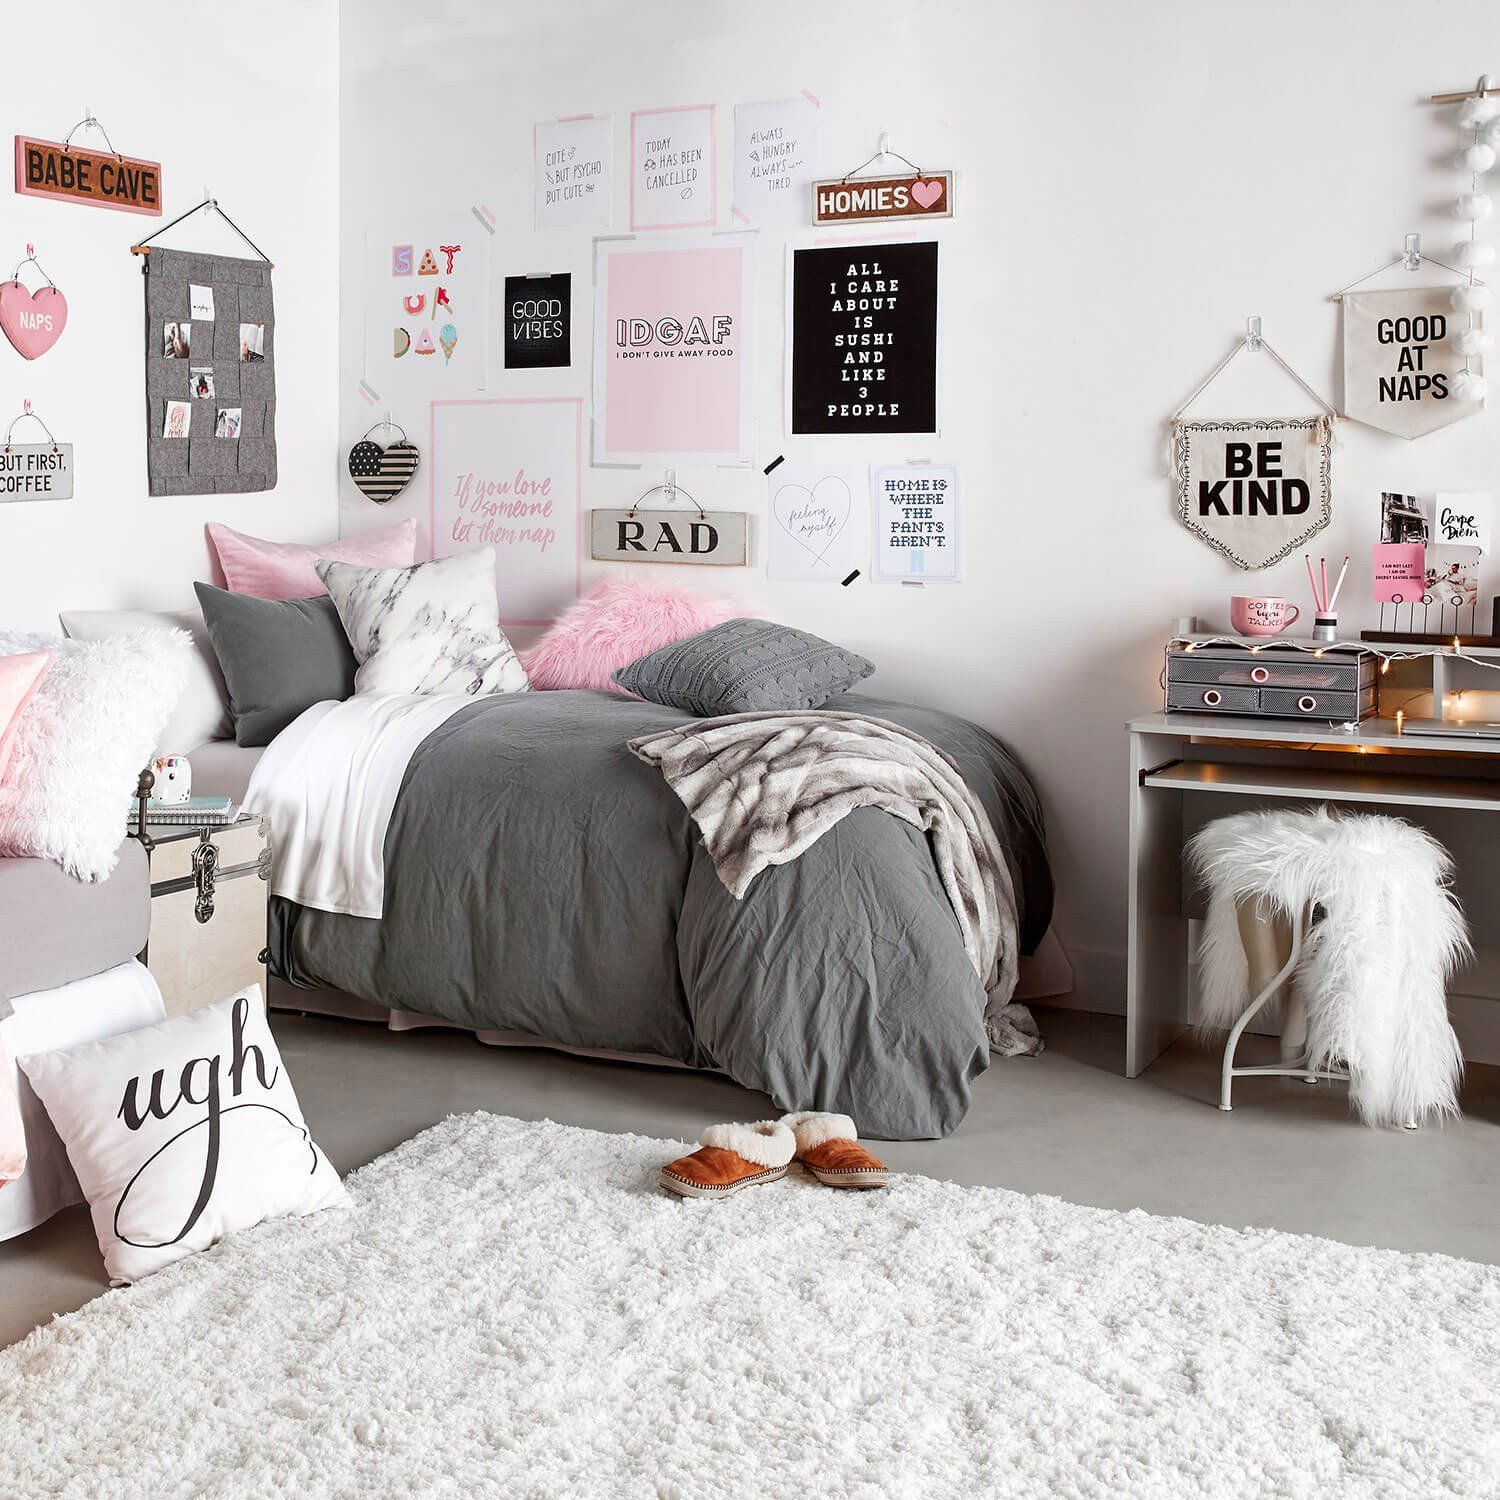 Classically Cozy Room Fg in 2019 Dorm room designs